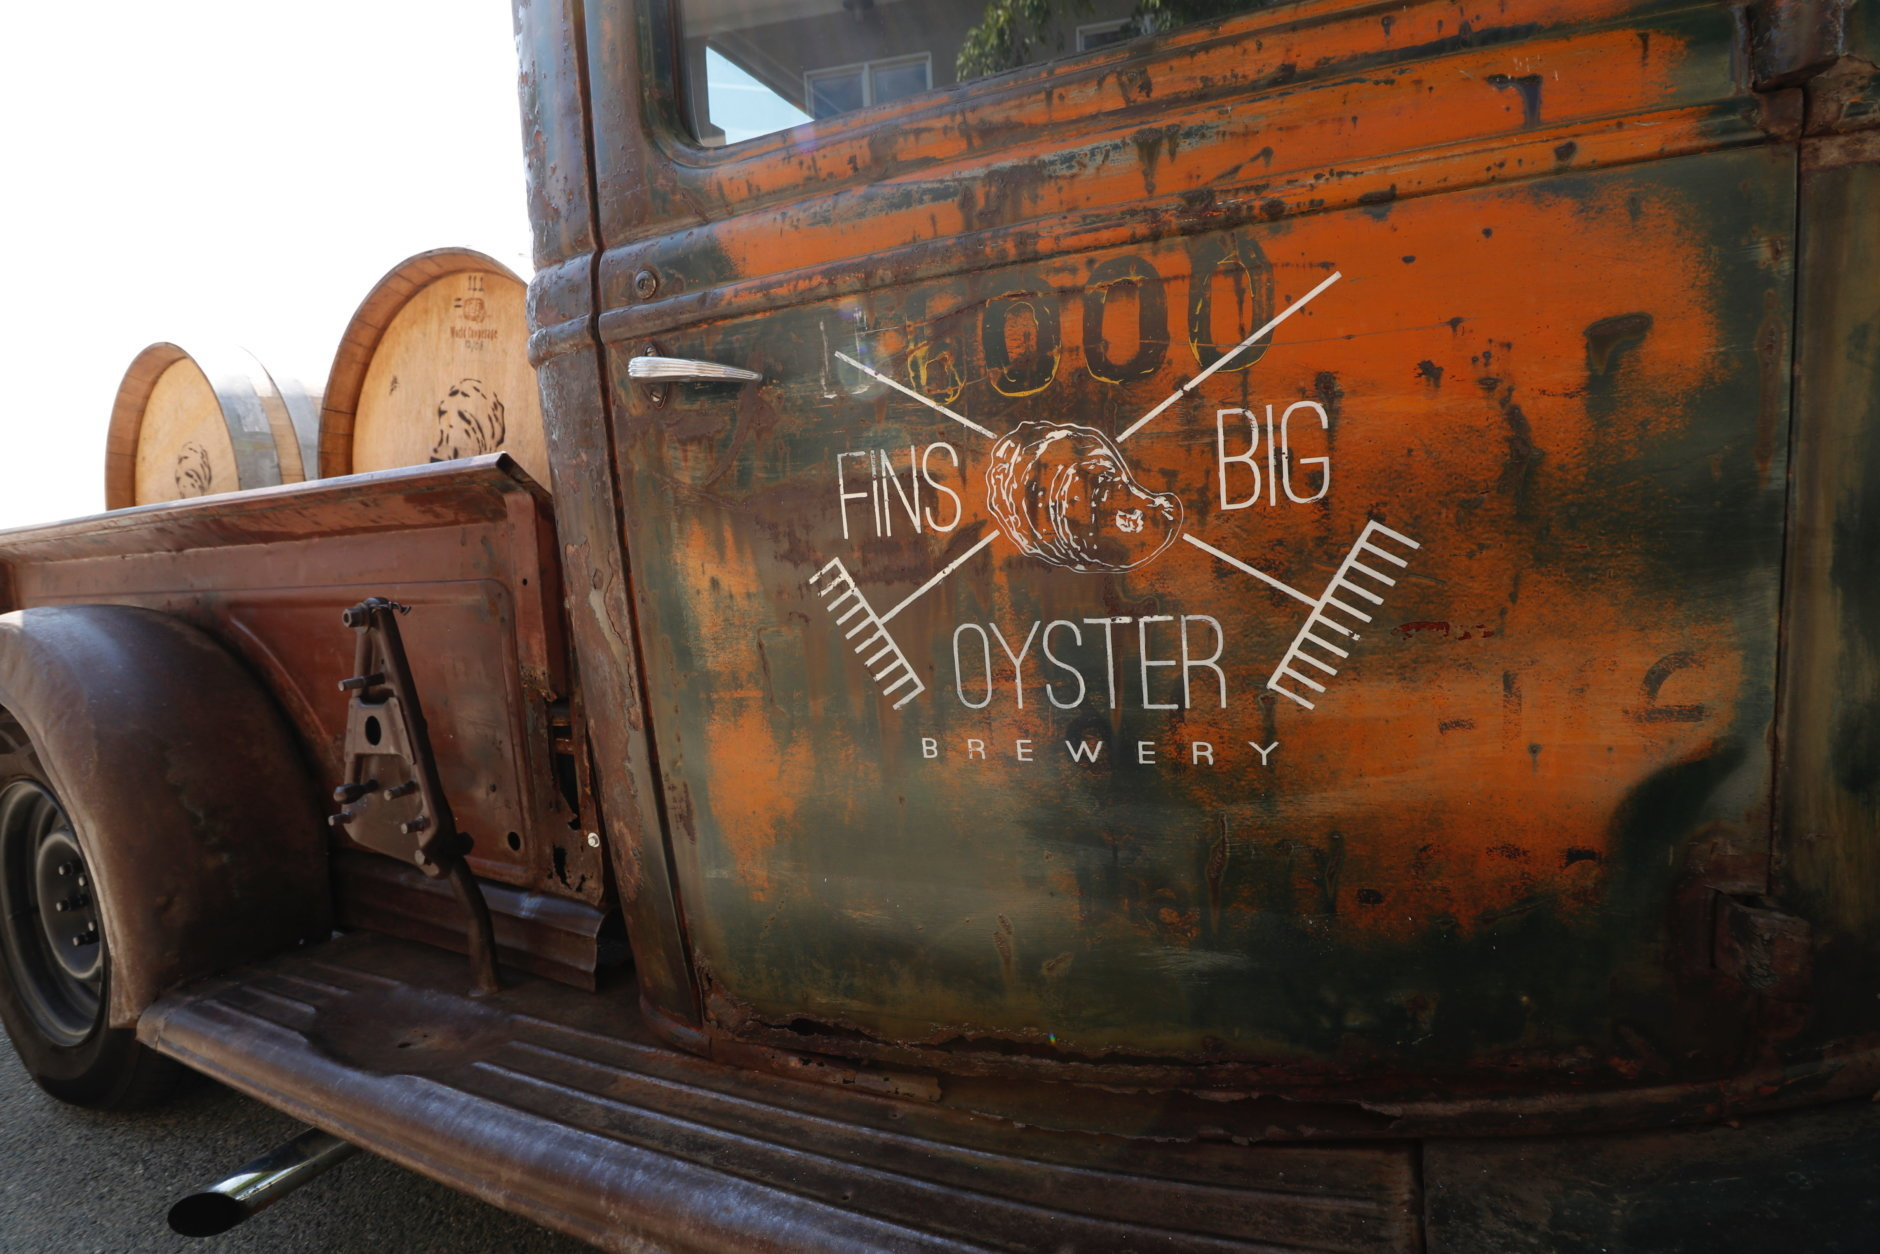 Big Oyster Brewery in Lewes, Delaware is a popular beach brewery. (WTOP/Kate Ryan)